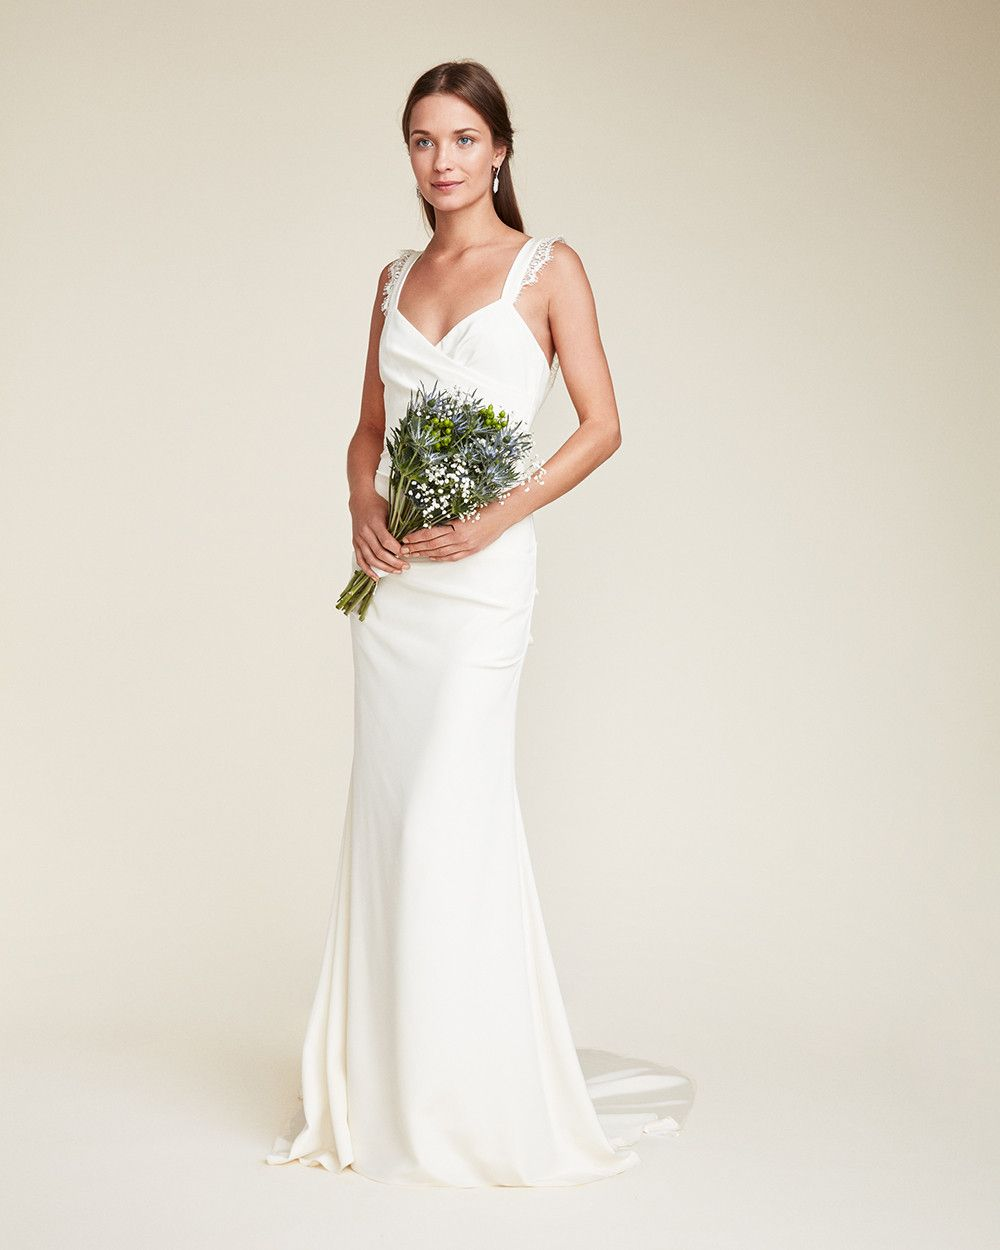 Alexis bridal gown bridal gowns bridal nicole miller